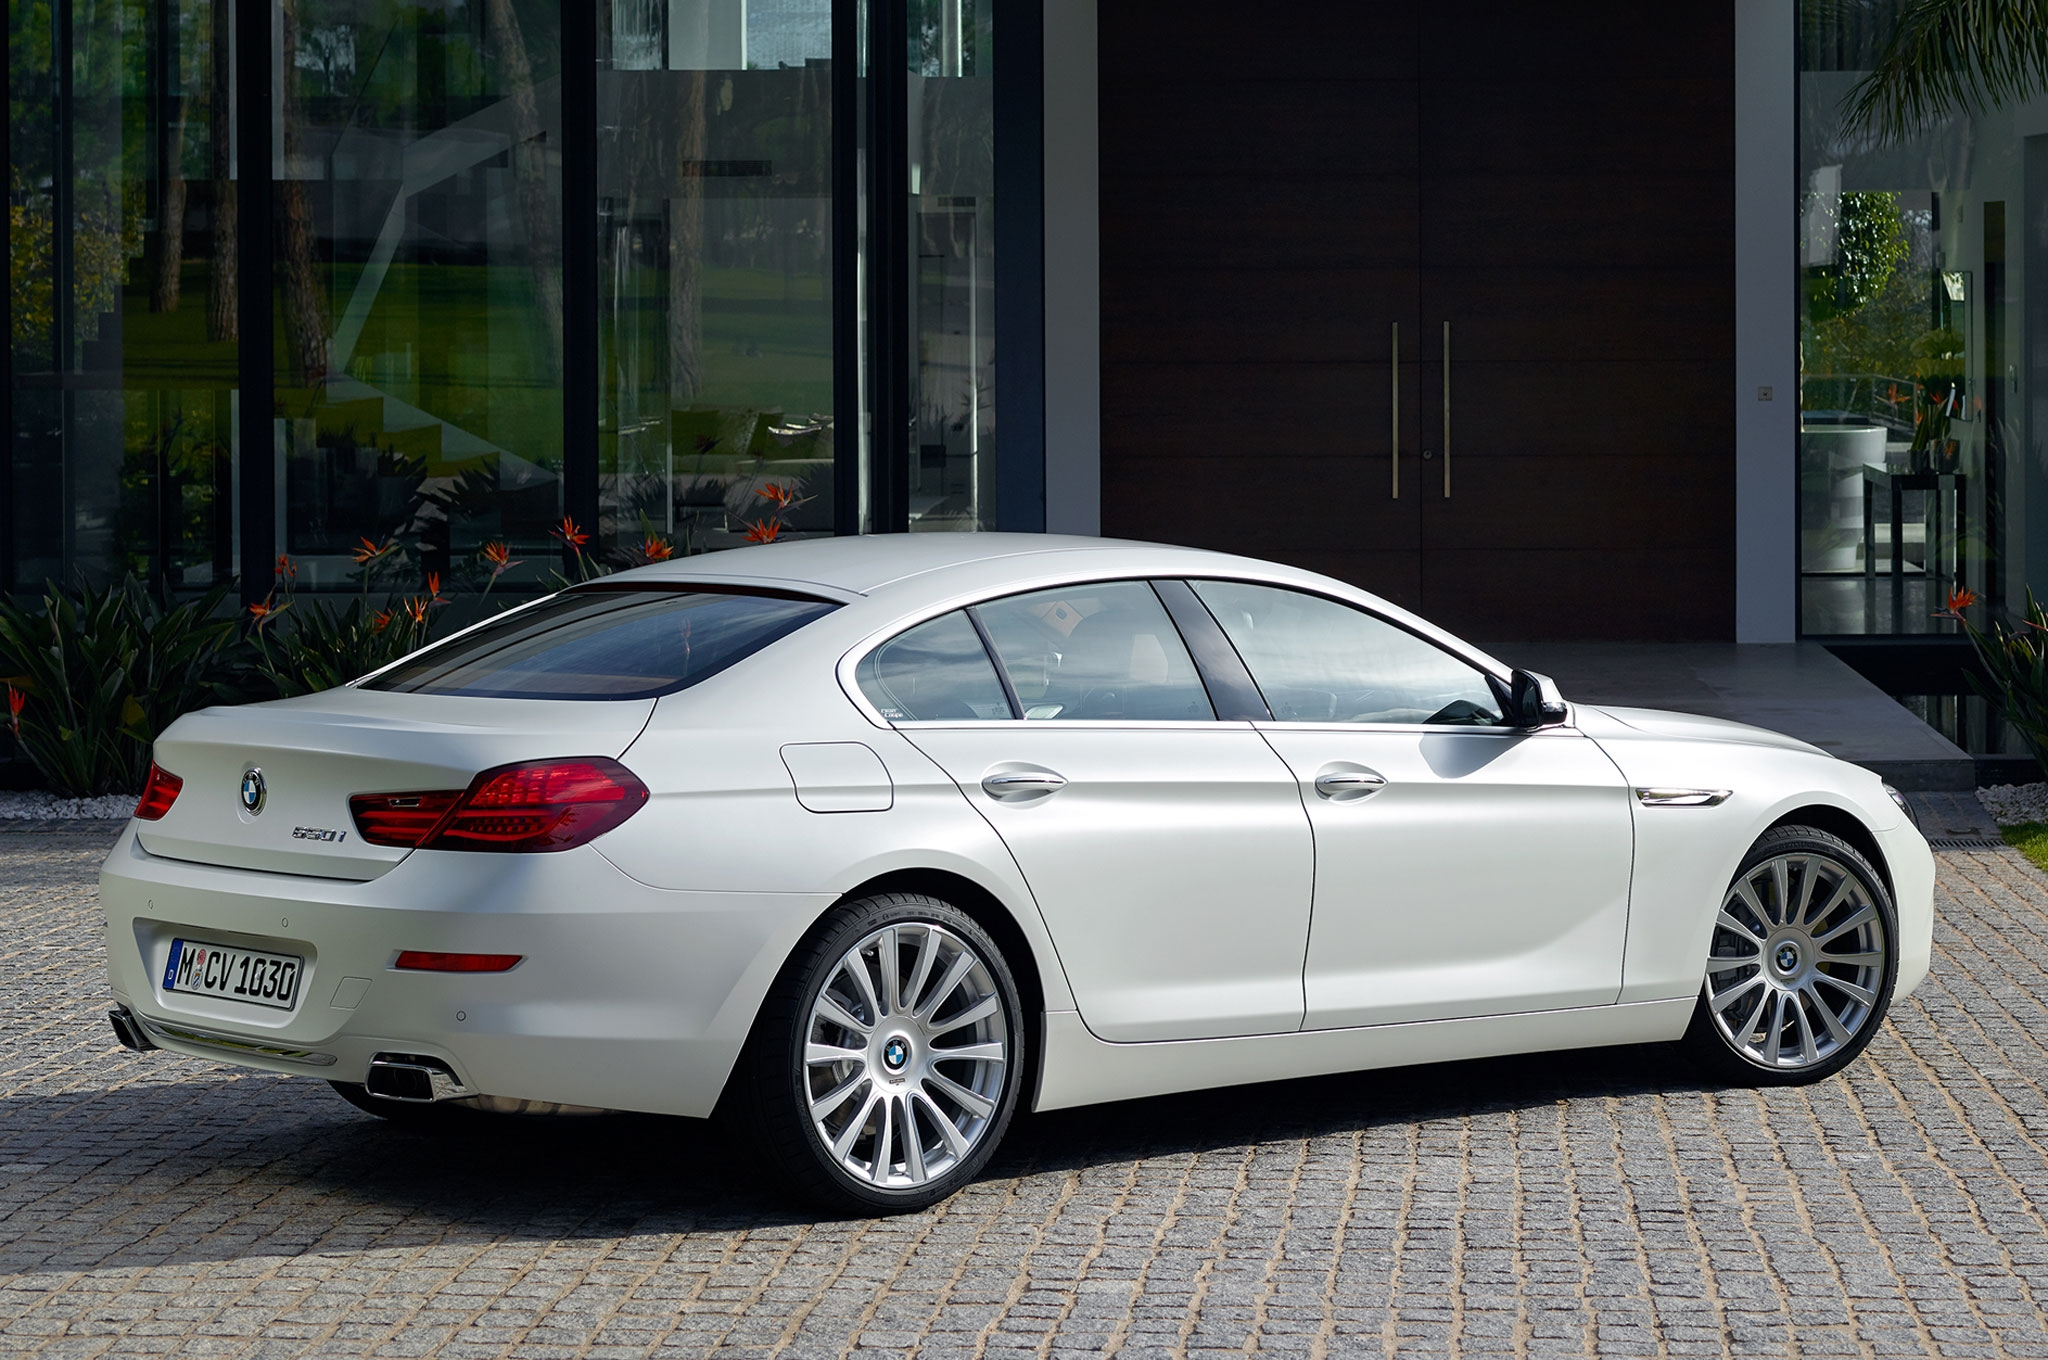 2016 Bmw M6 Gran Coupe #6